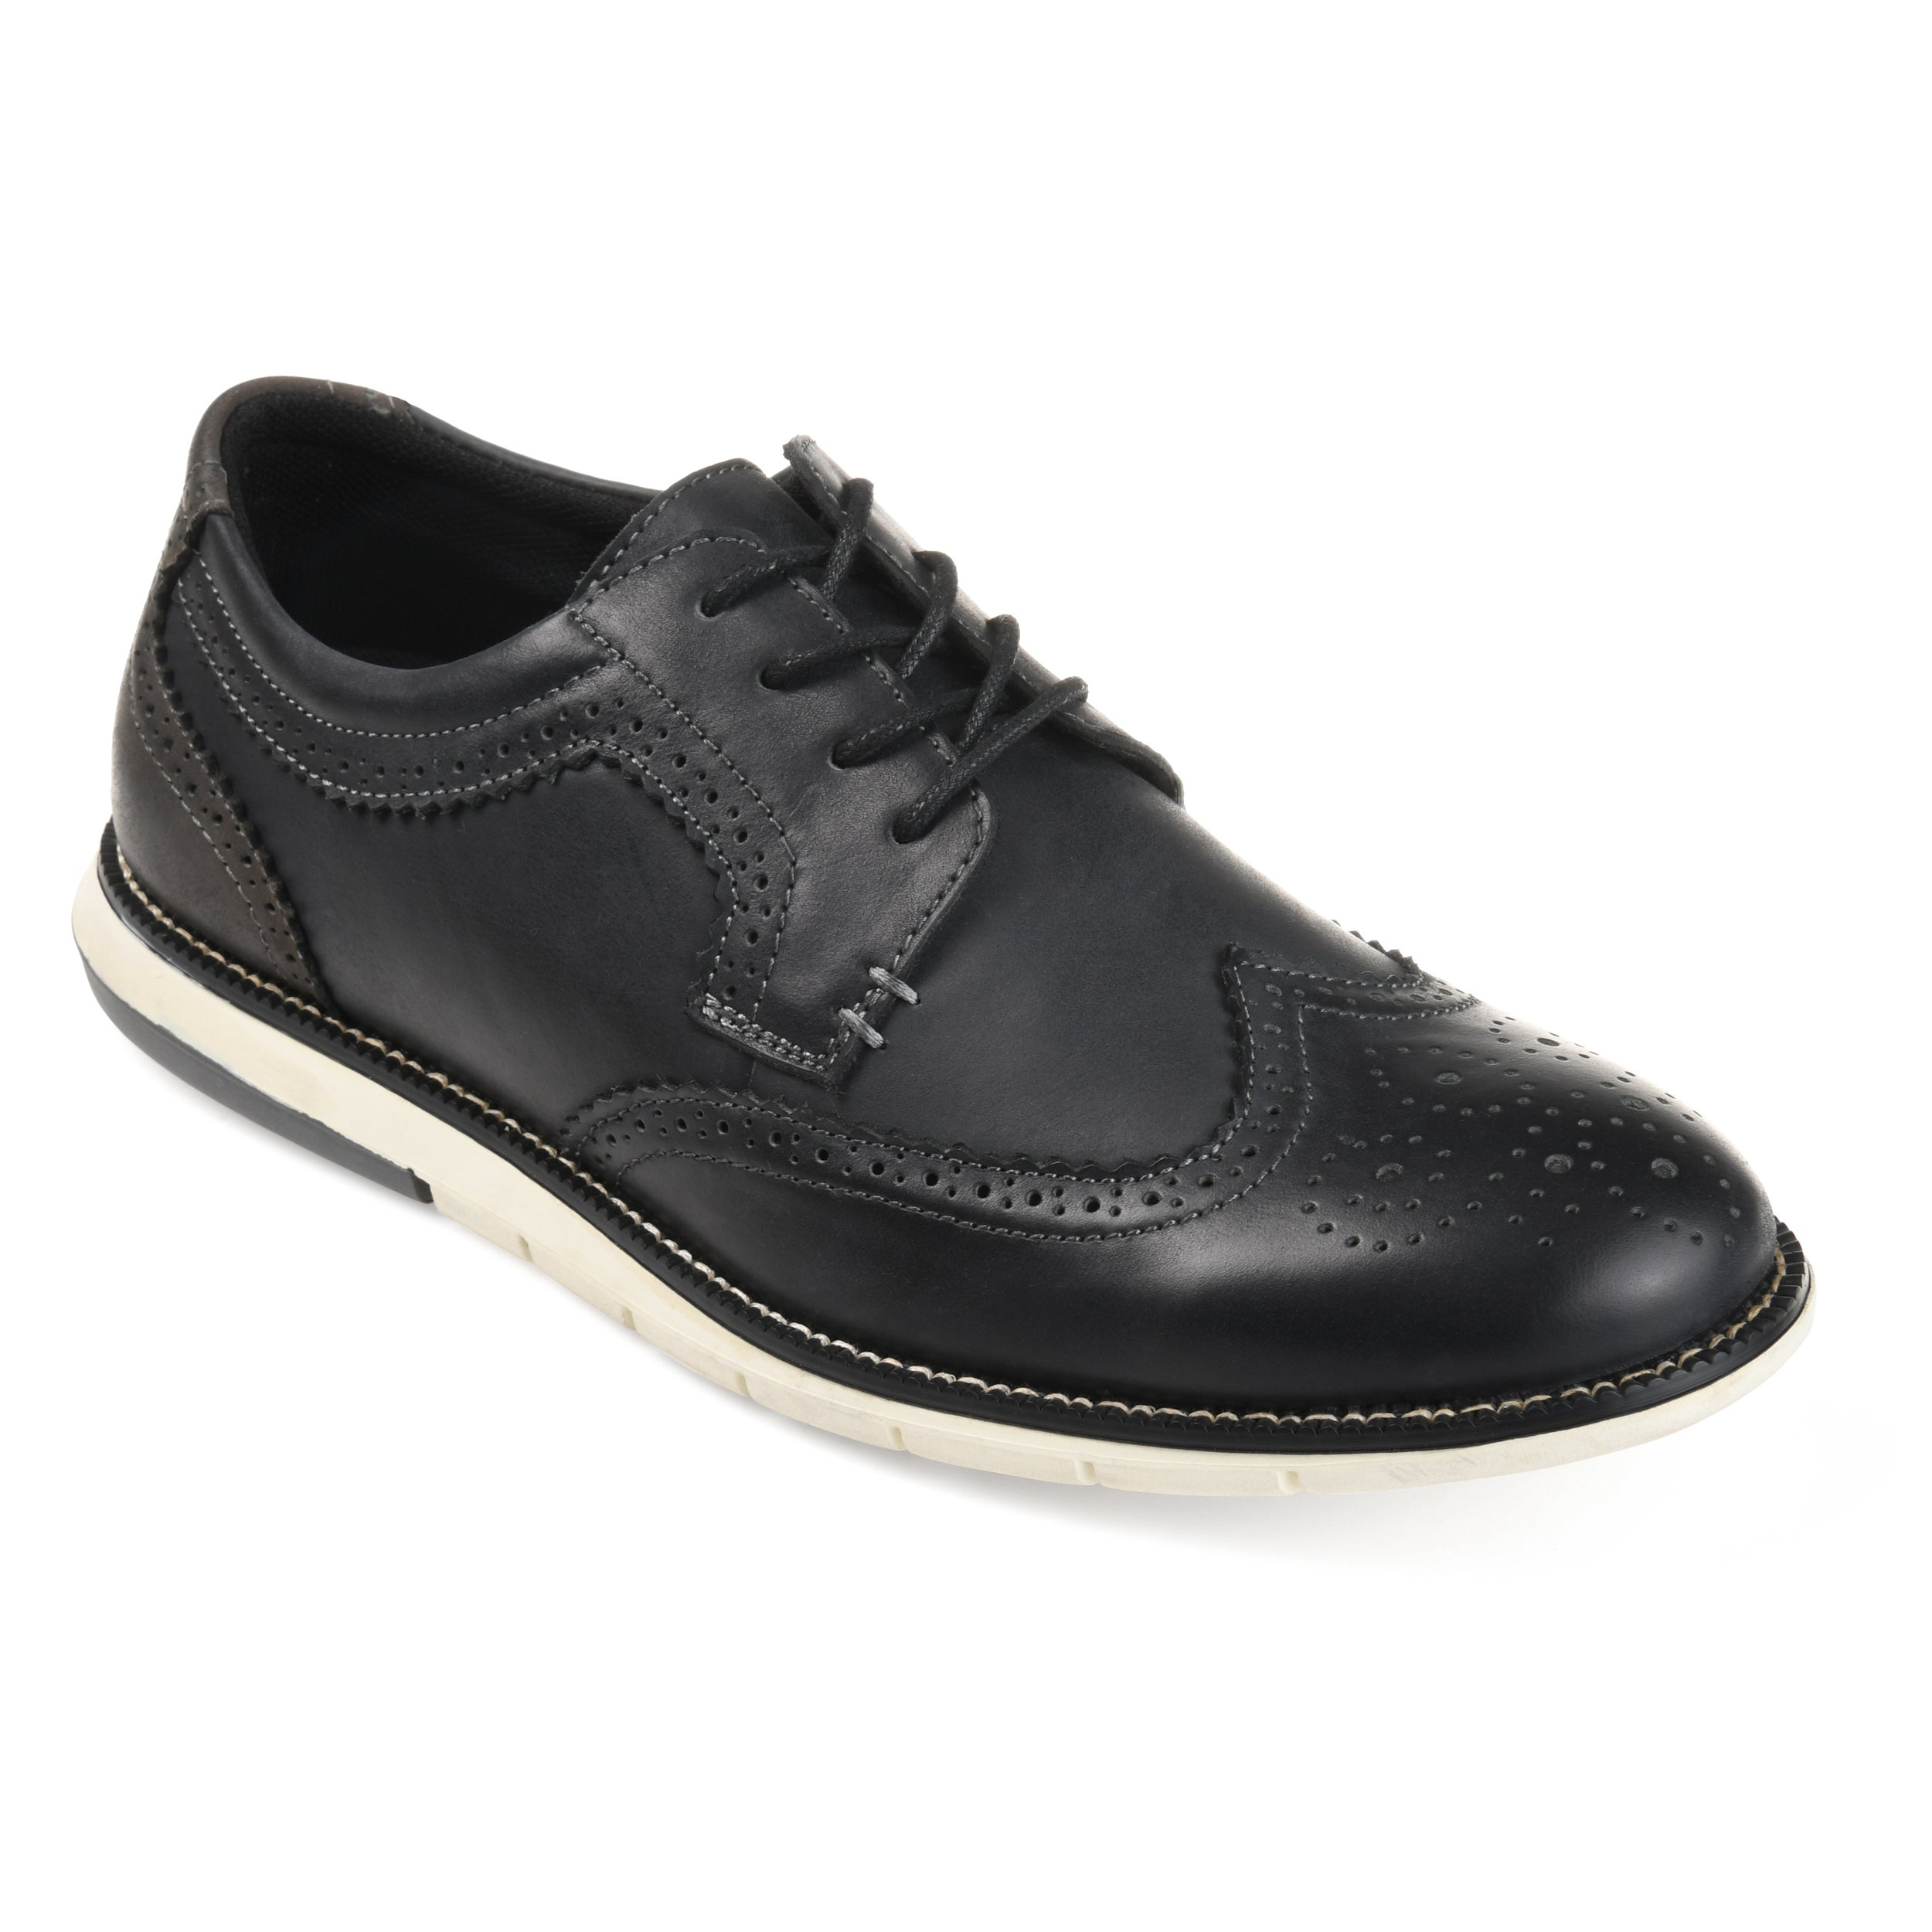 mens black leather shoes with white soles